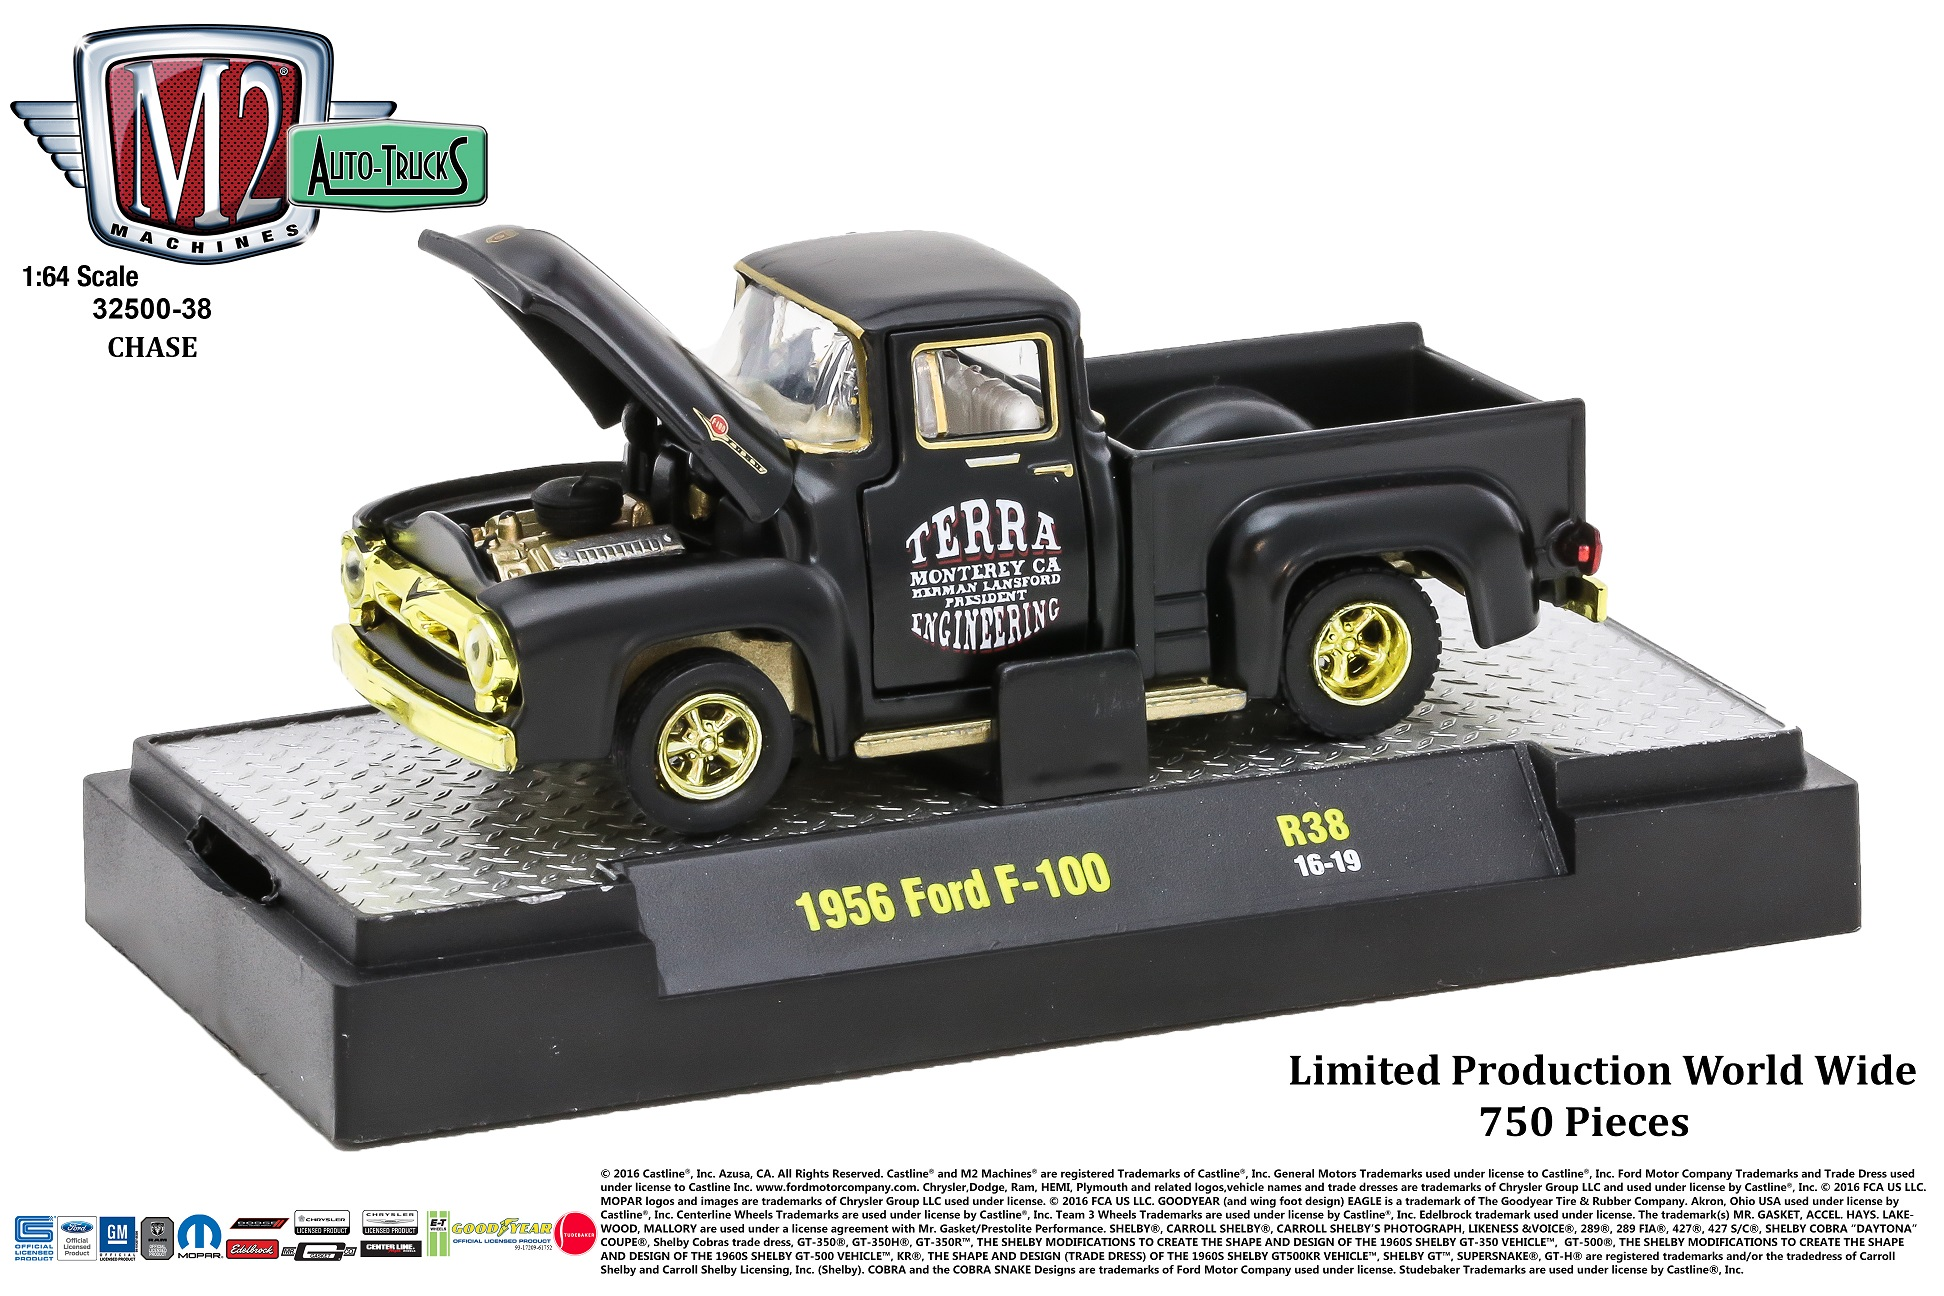 M2 Machines Auto Trucks Release 38 1:64 1956 Ford F-100 Truck CHASE ...